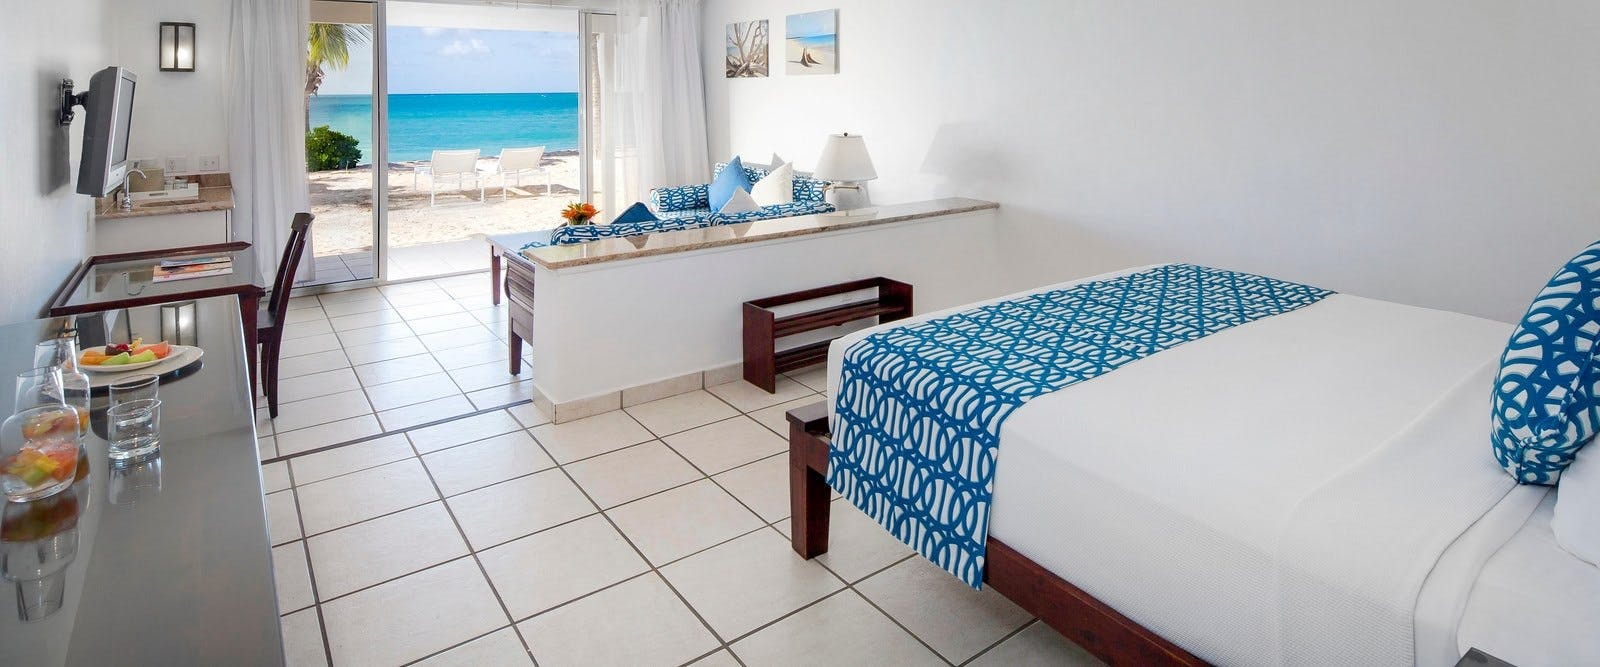 Premium Beachfront Suite at Galley Bay Resort & Spa, Antigua